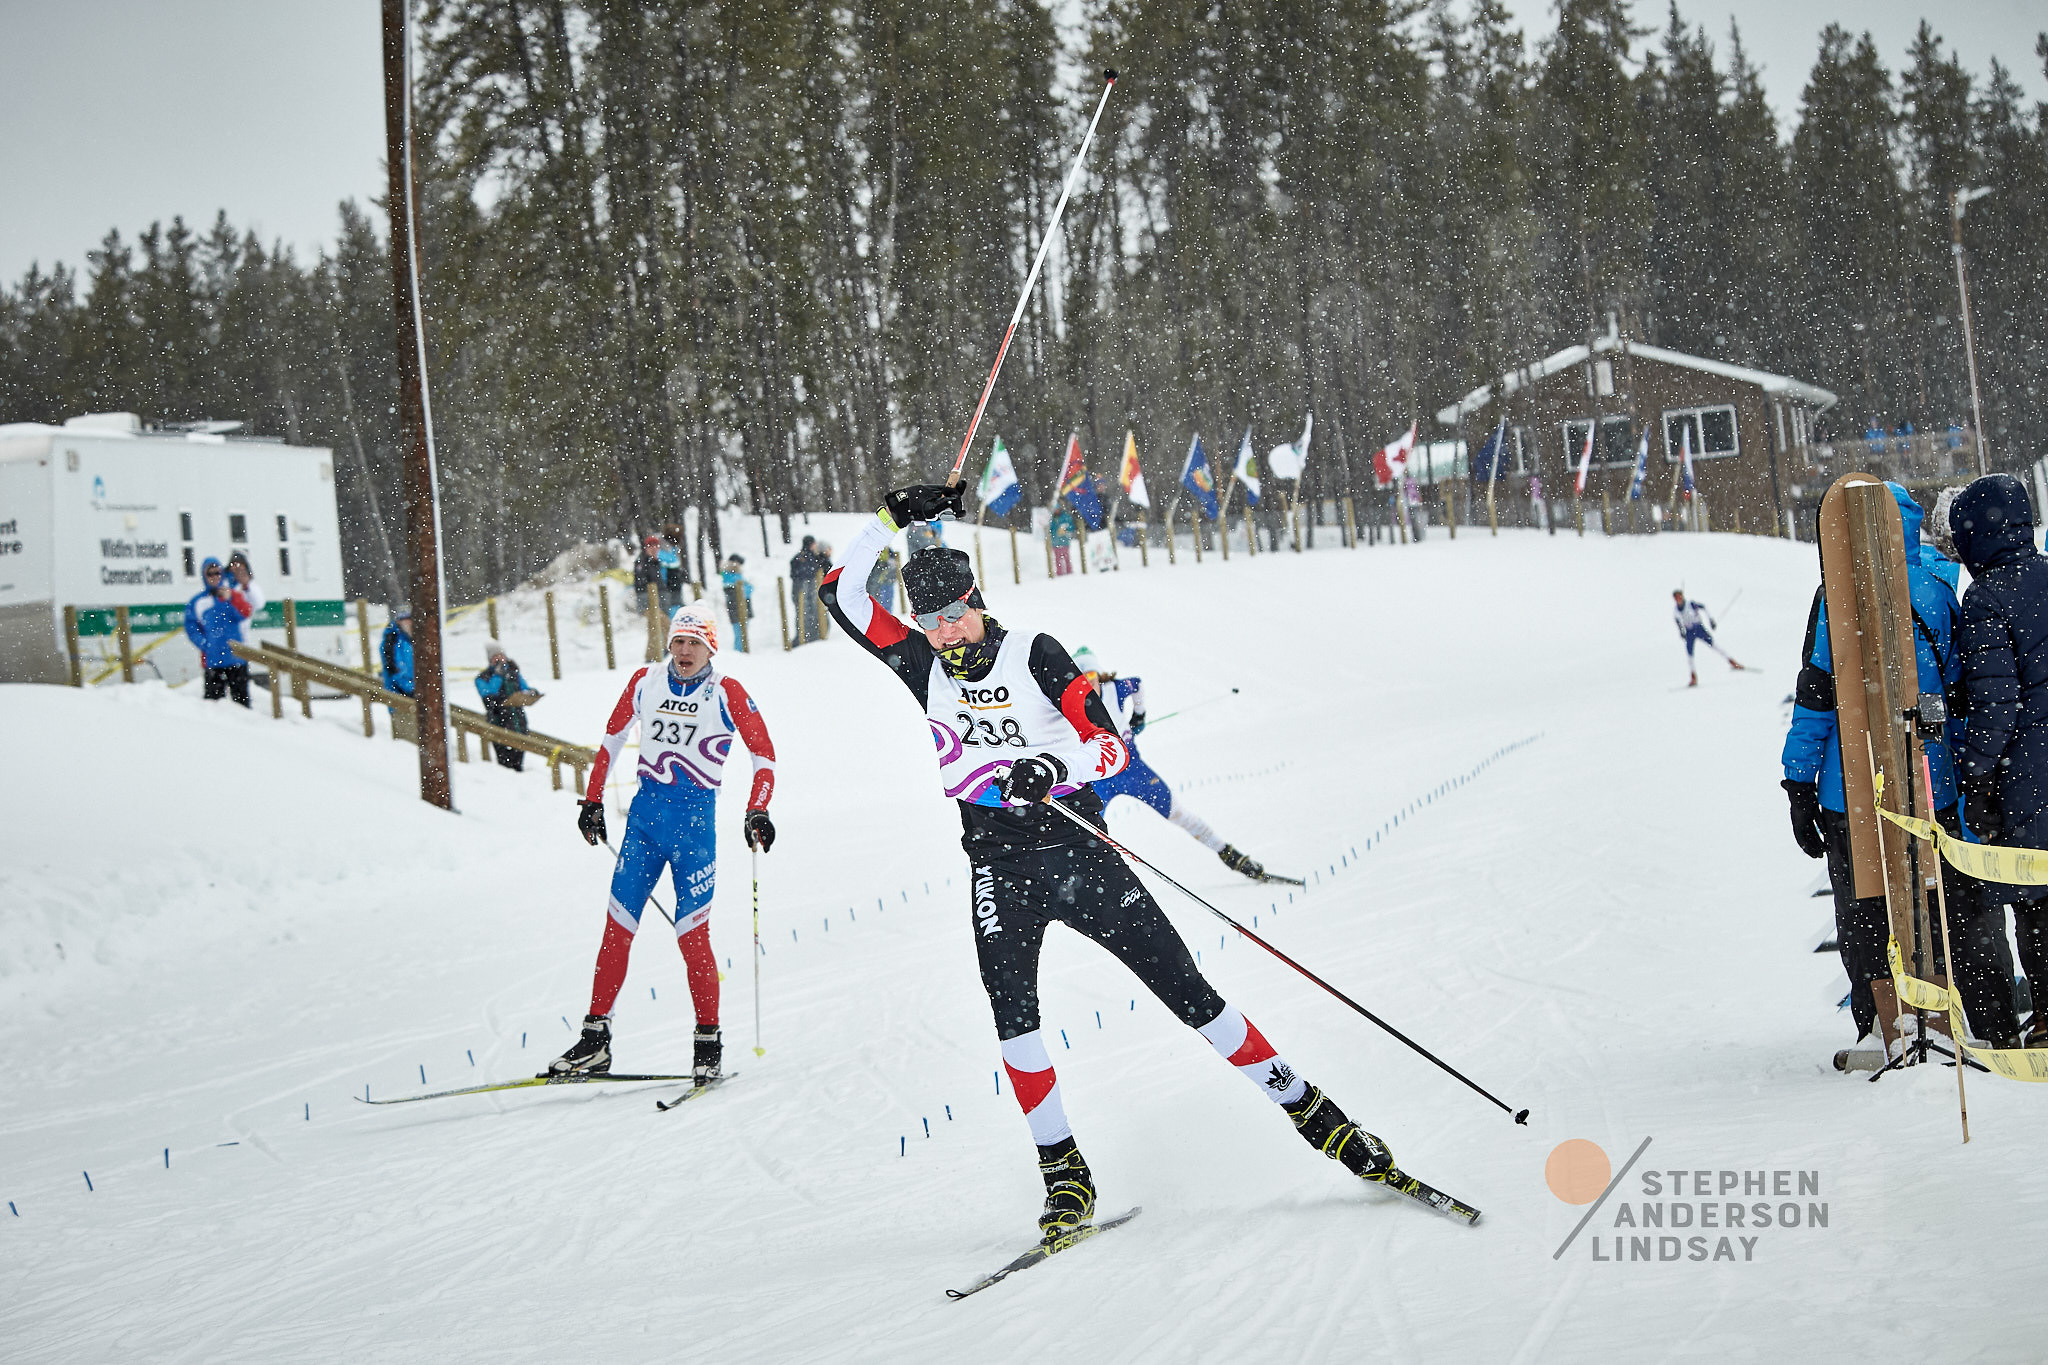 _O3Q5731_2018-Arctic-Winter-Games_Web-Gallery-JPEG-80-Full-Size-(sRGB)-1.jpg